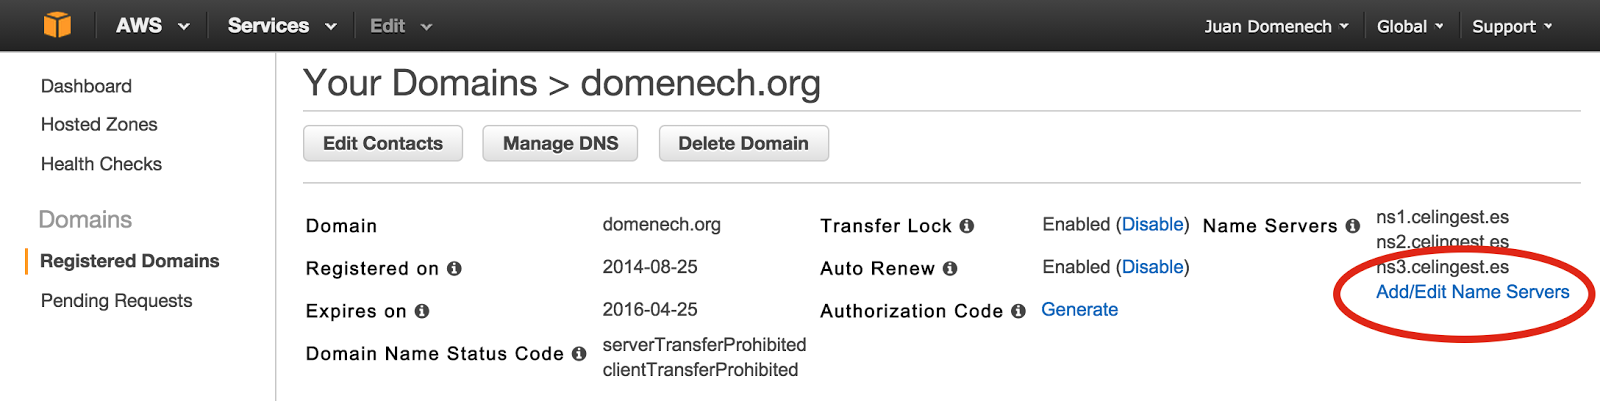 blog-domenech-org-transfer-your-dns-configuration-aws-route-53-change-servers